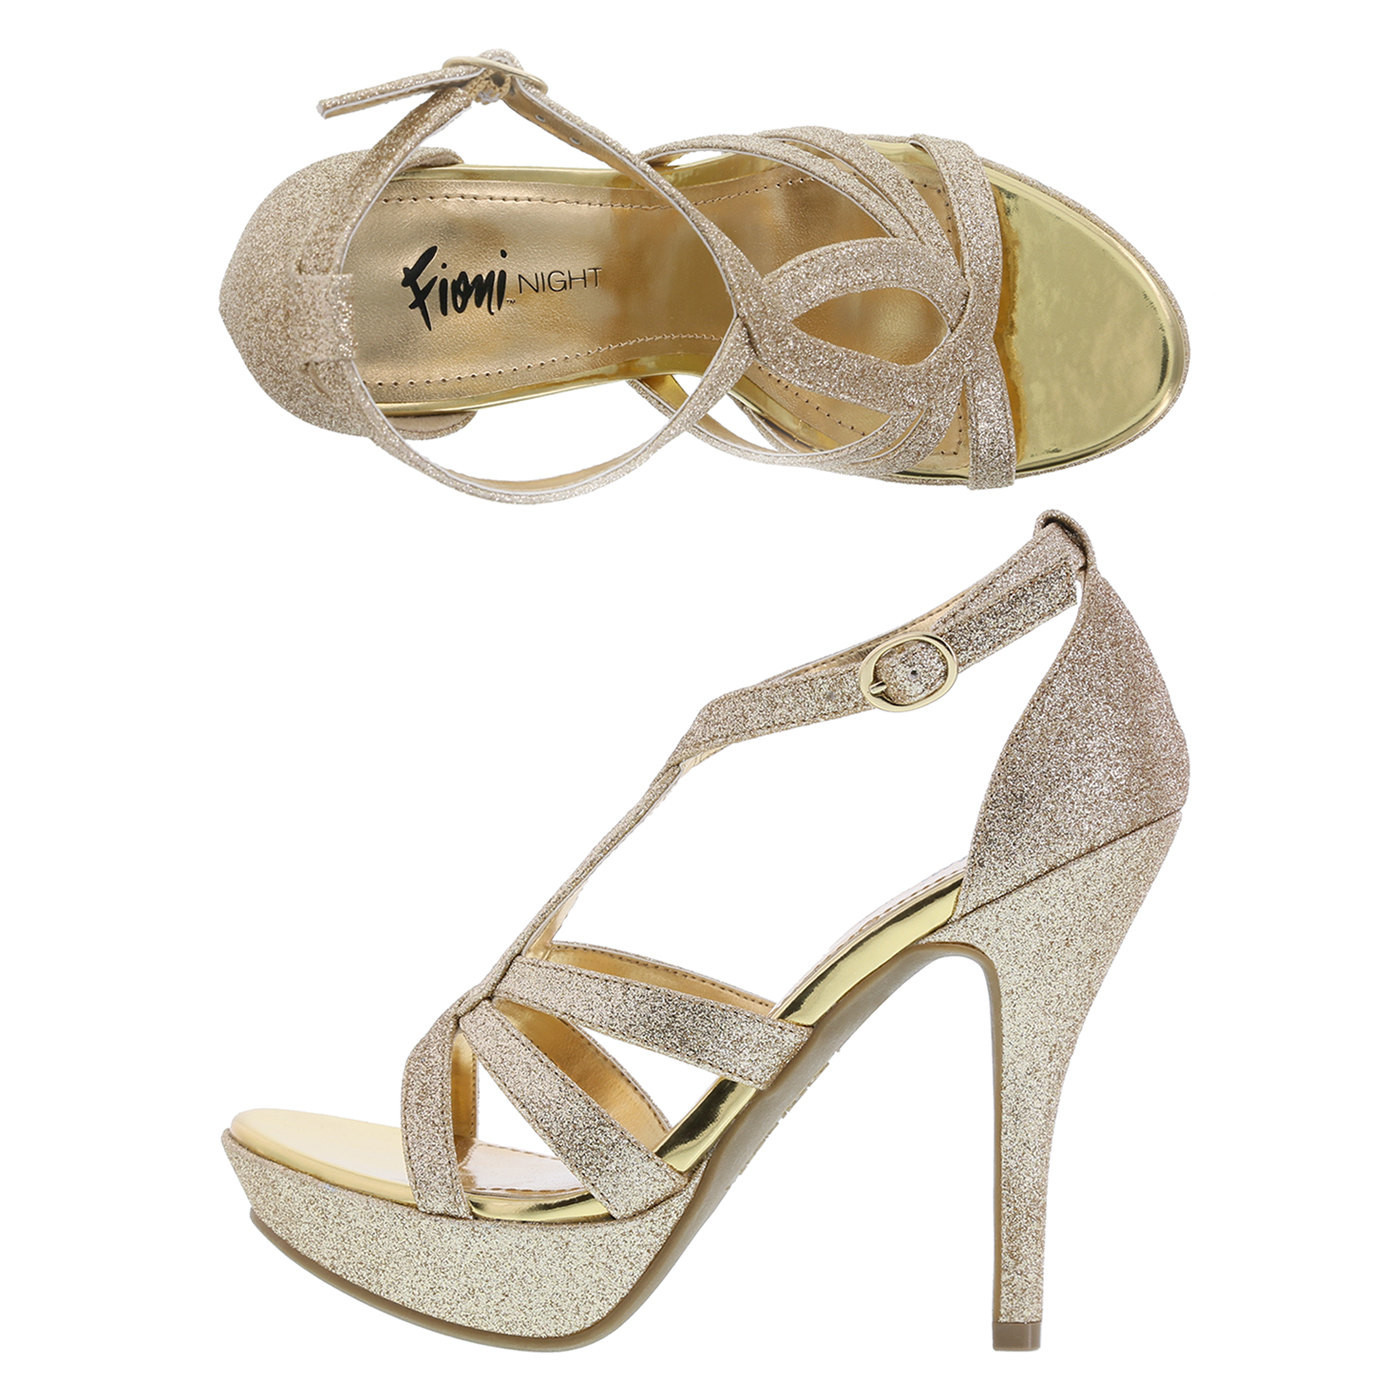 Womens platform dress heels , High heel sandals Size 9 medium Gold and Silver